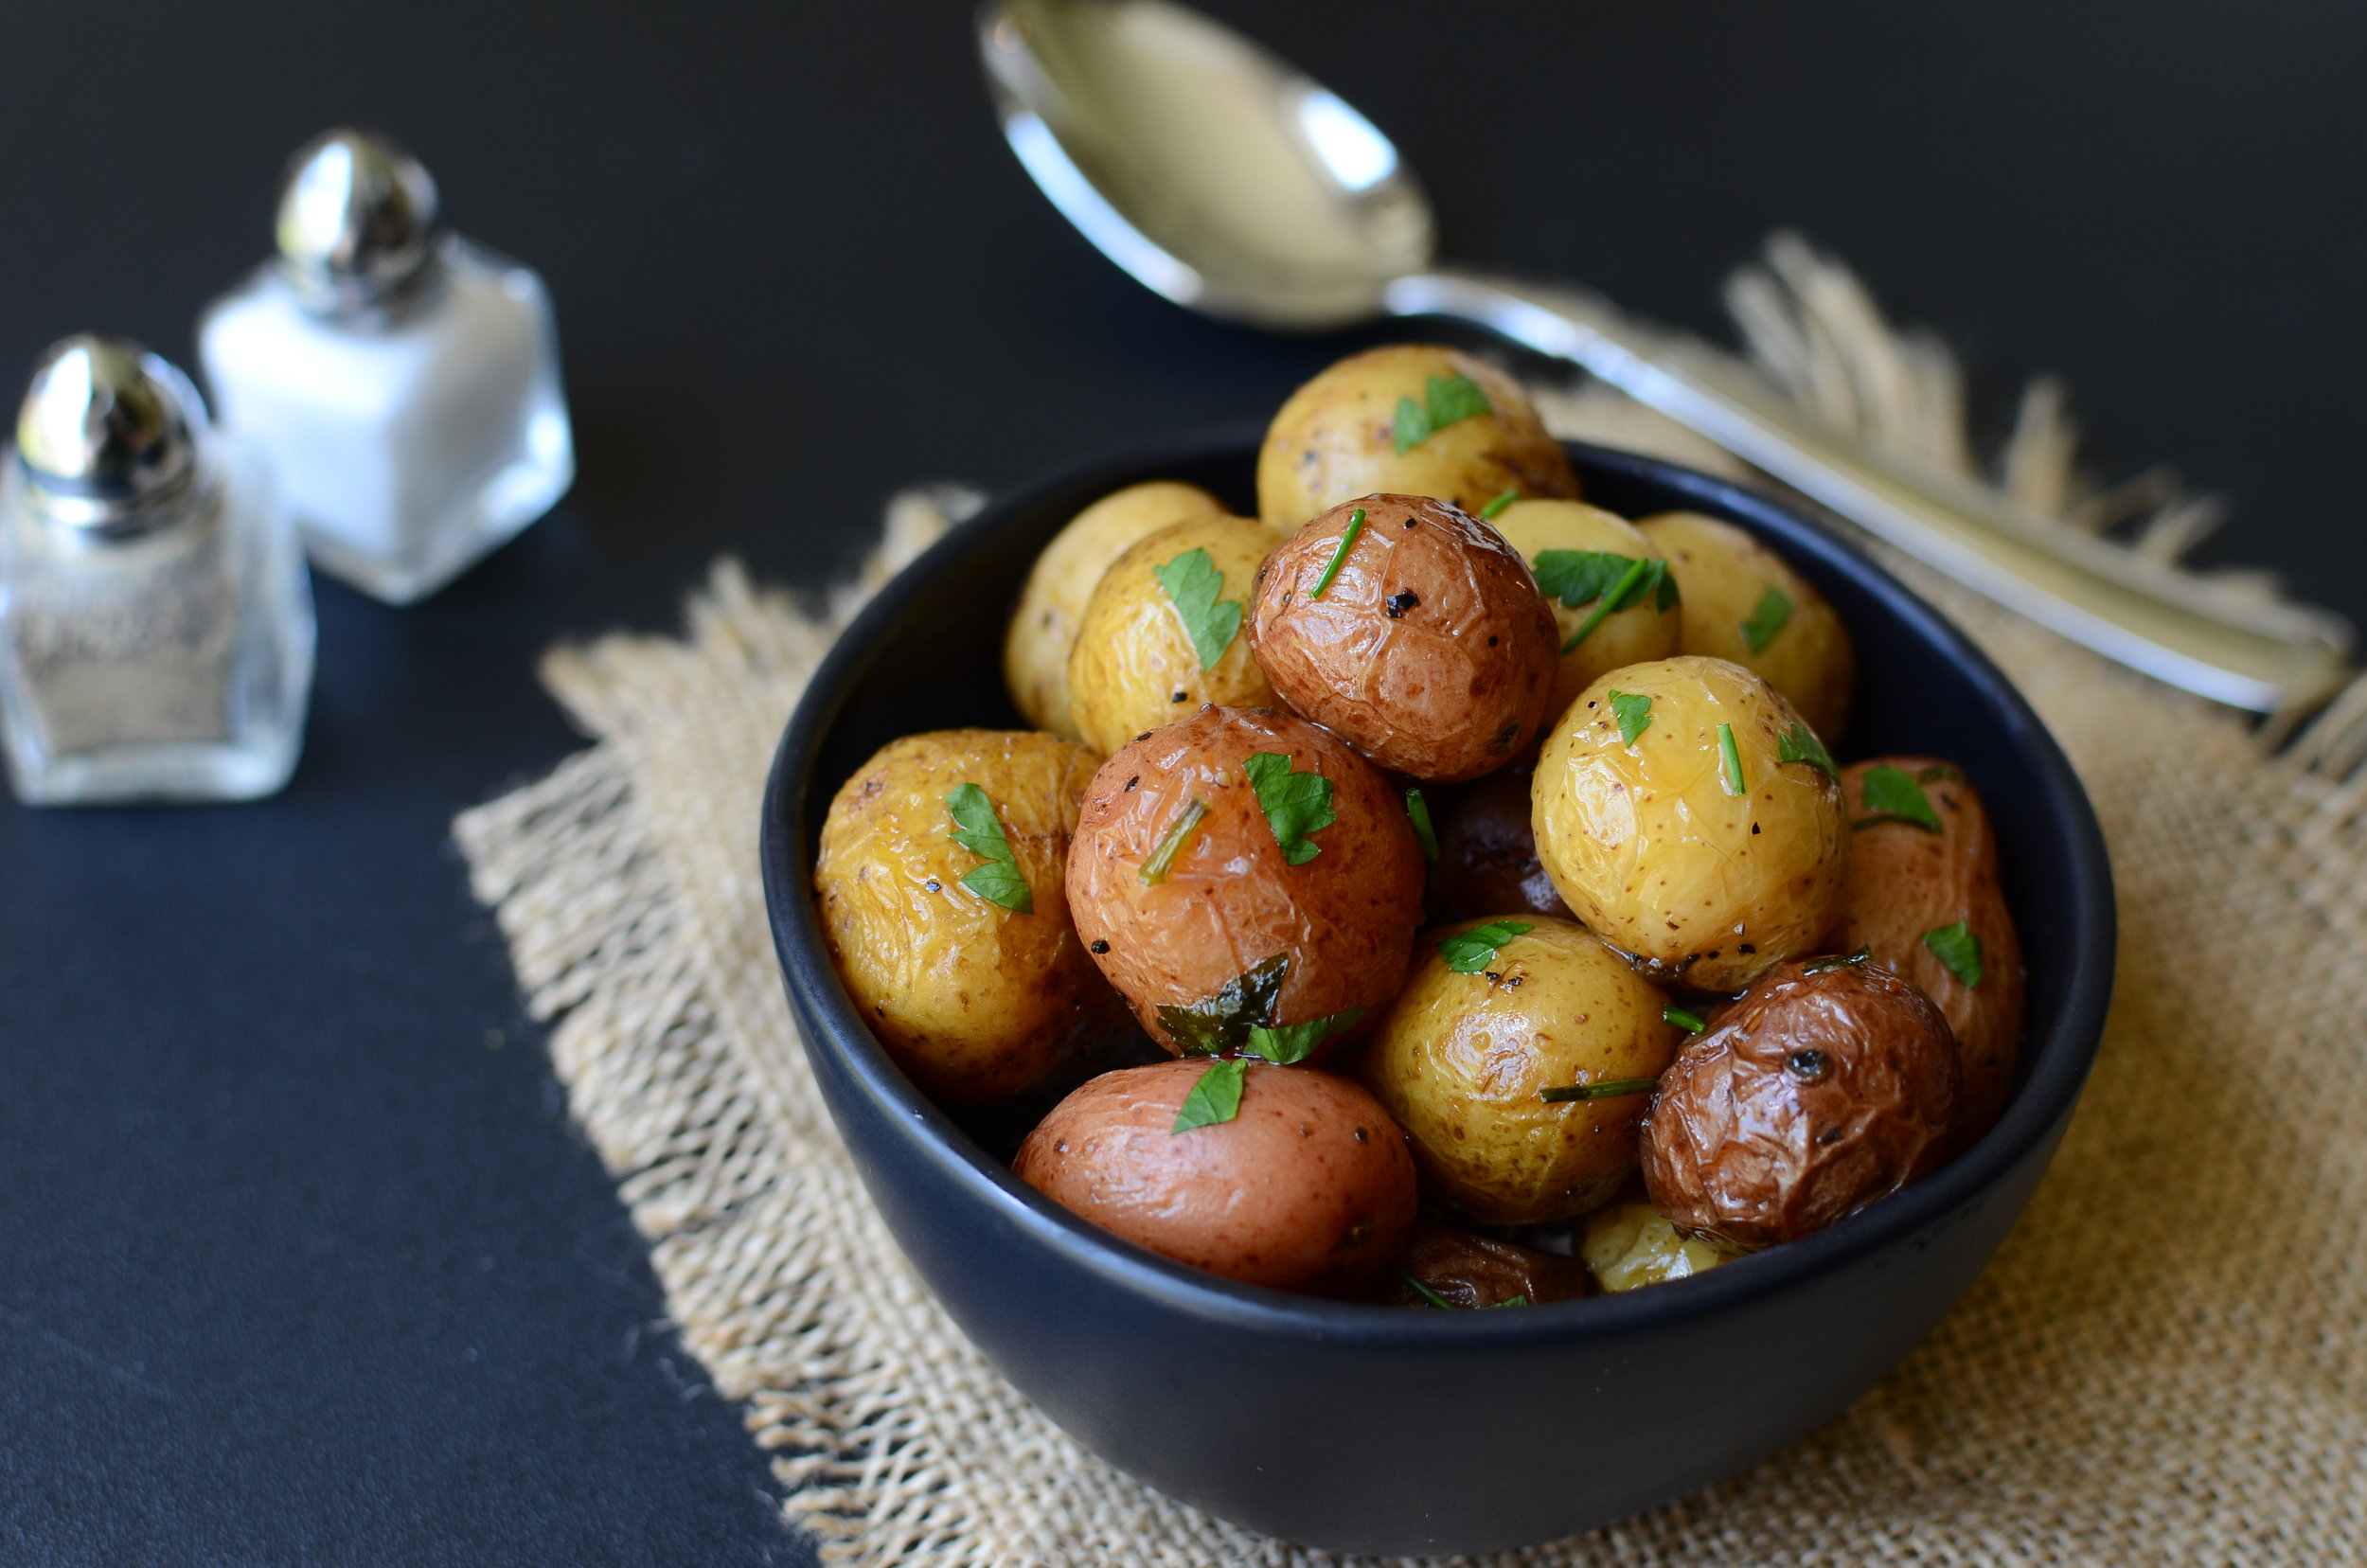 The best tiny potato recipe - ButterYum. how to cook tiny potatoes. instant pot potatoes. creamy potato recipe. tiny steamed potatoes. how to cook bite-size potatoes. how long should I cook tiny potatoes. Aldi potato medley recipe. bite-size potato medley recipe. how long to cook tiny new potatoes. tri-colored baby potato recipe. how to cook baby potatoes.